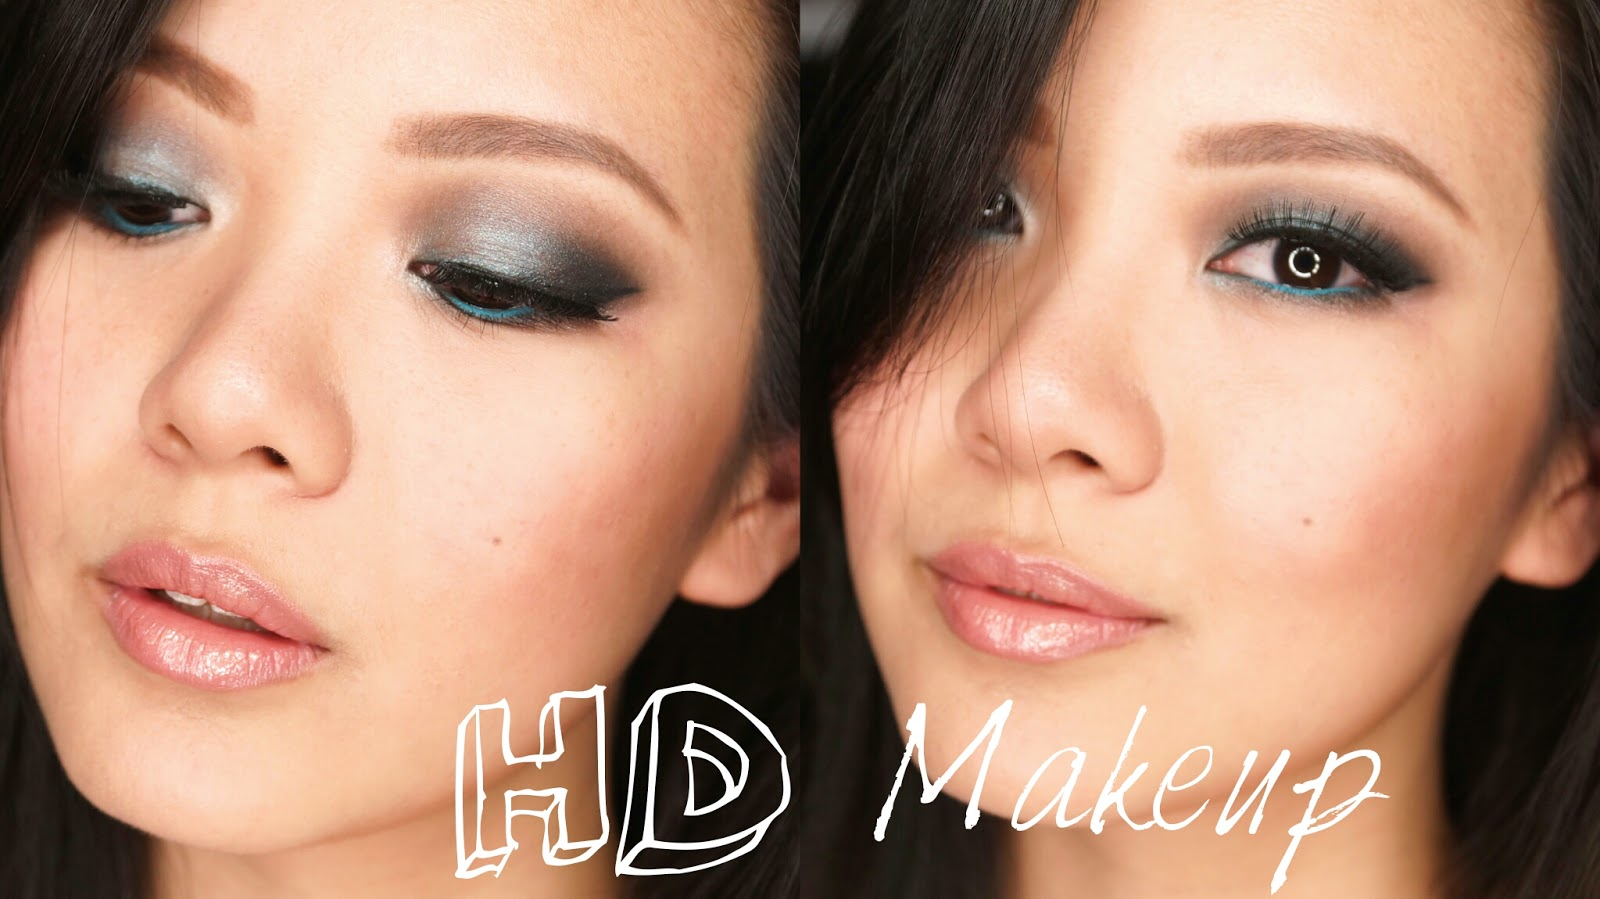 Makeup Tutorial Photography Friendly Hd Makeup For Prom Formal